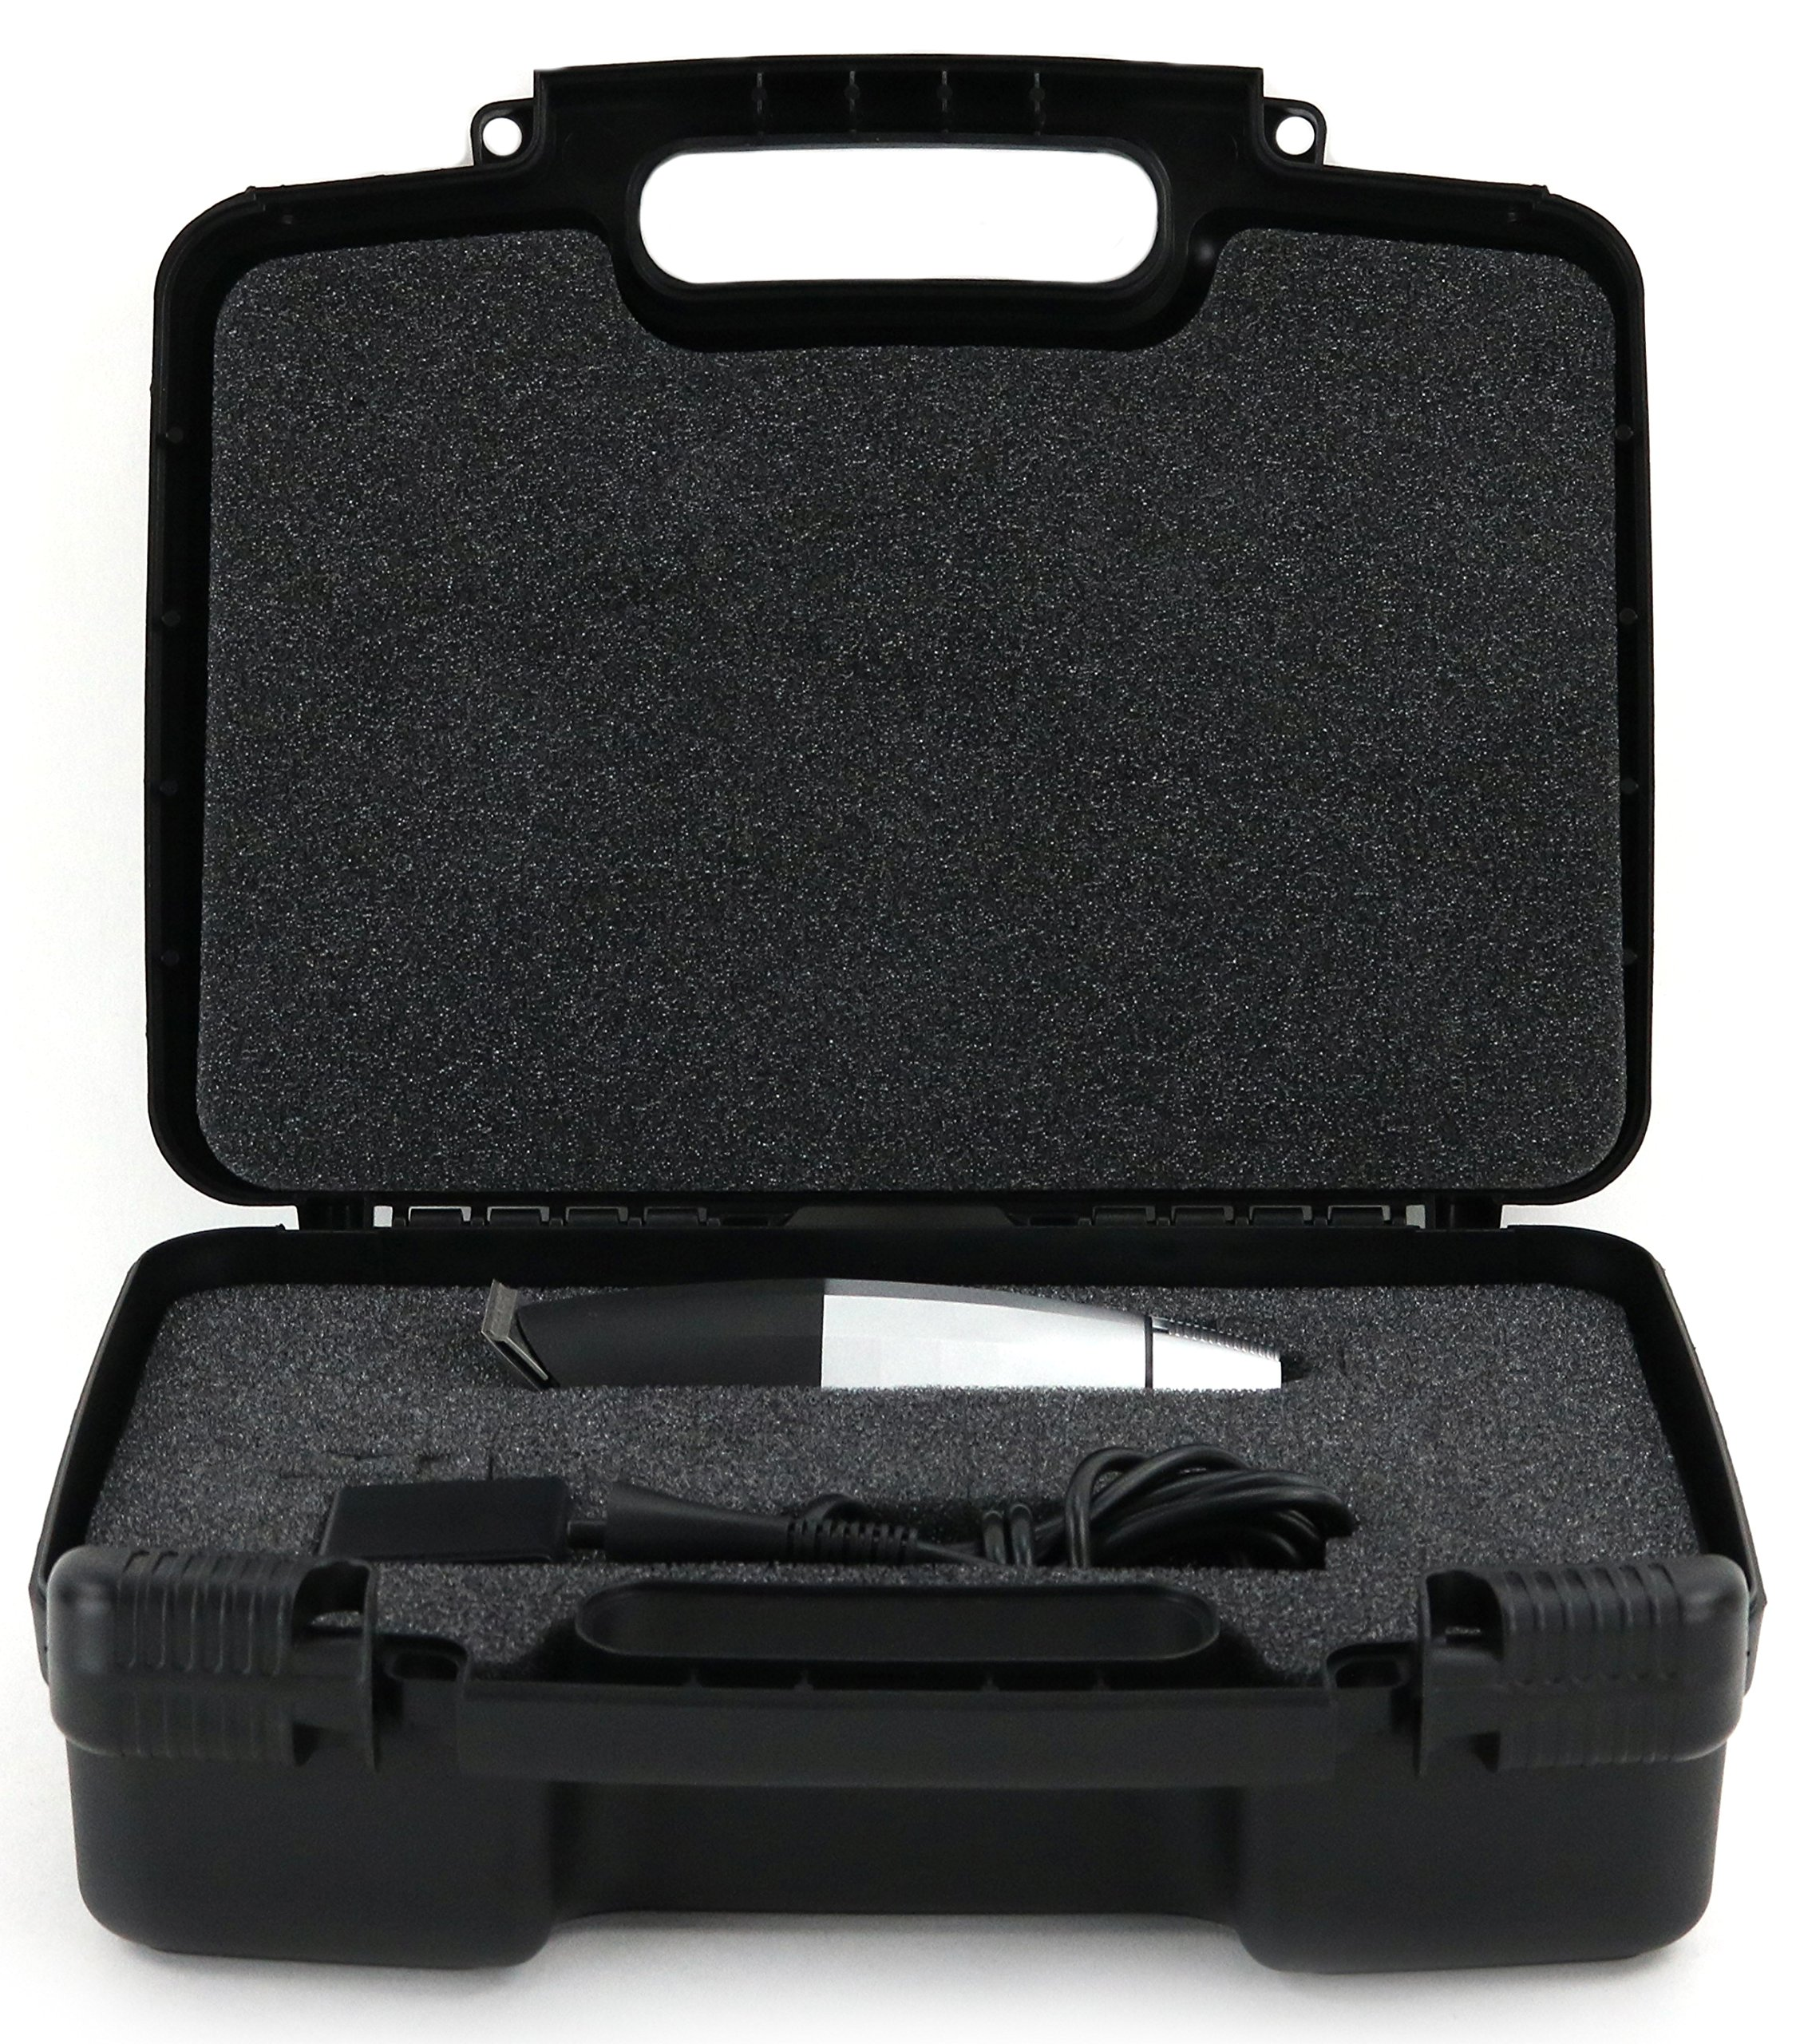 Life Made Better Storage Organizer - Compatible with Bevel Trimmer - Durable Carrying Case - Black